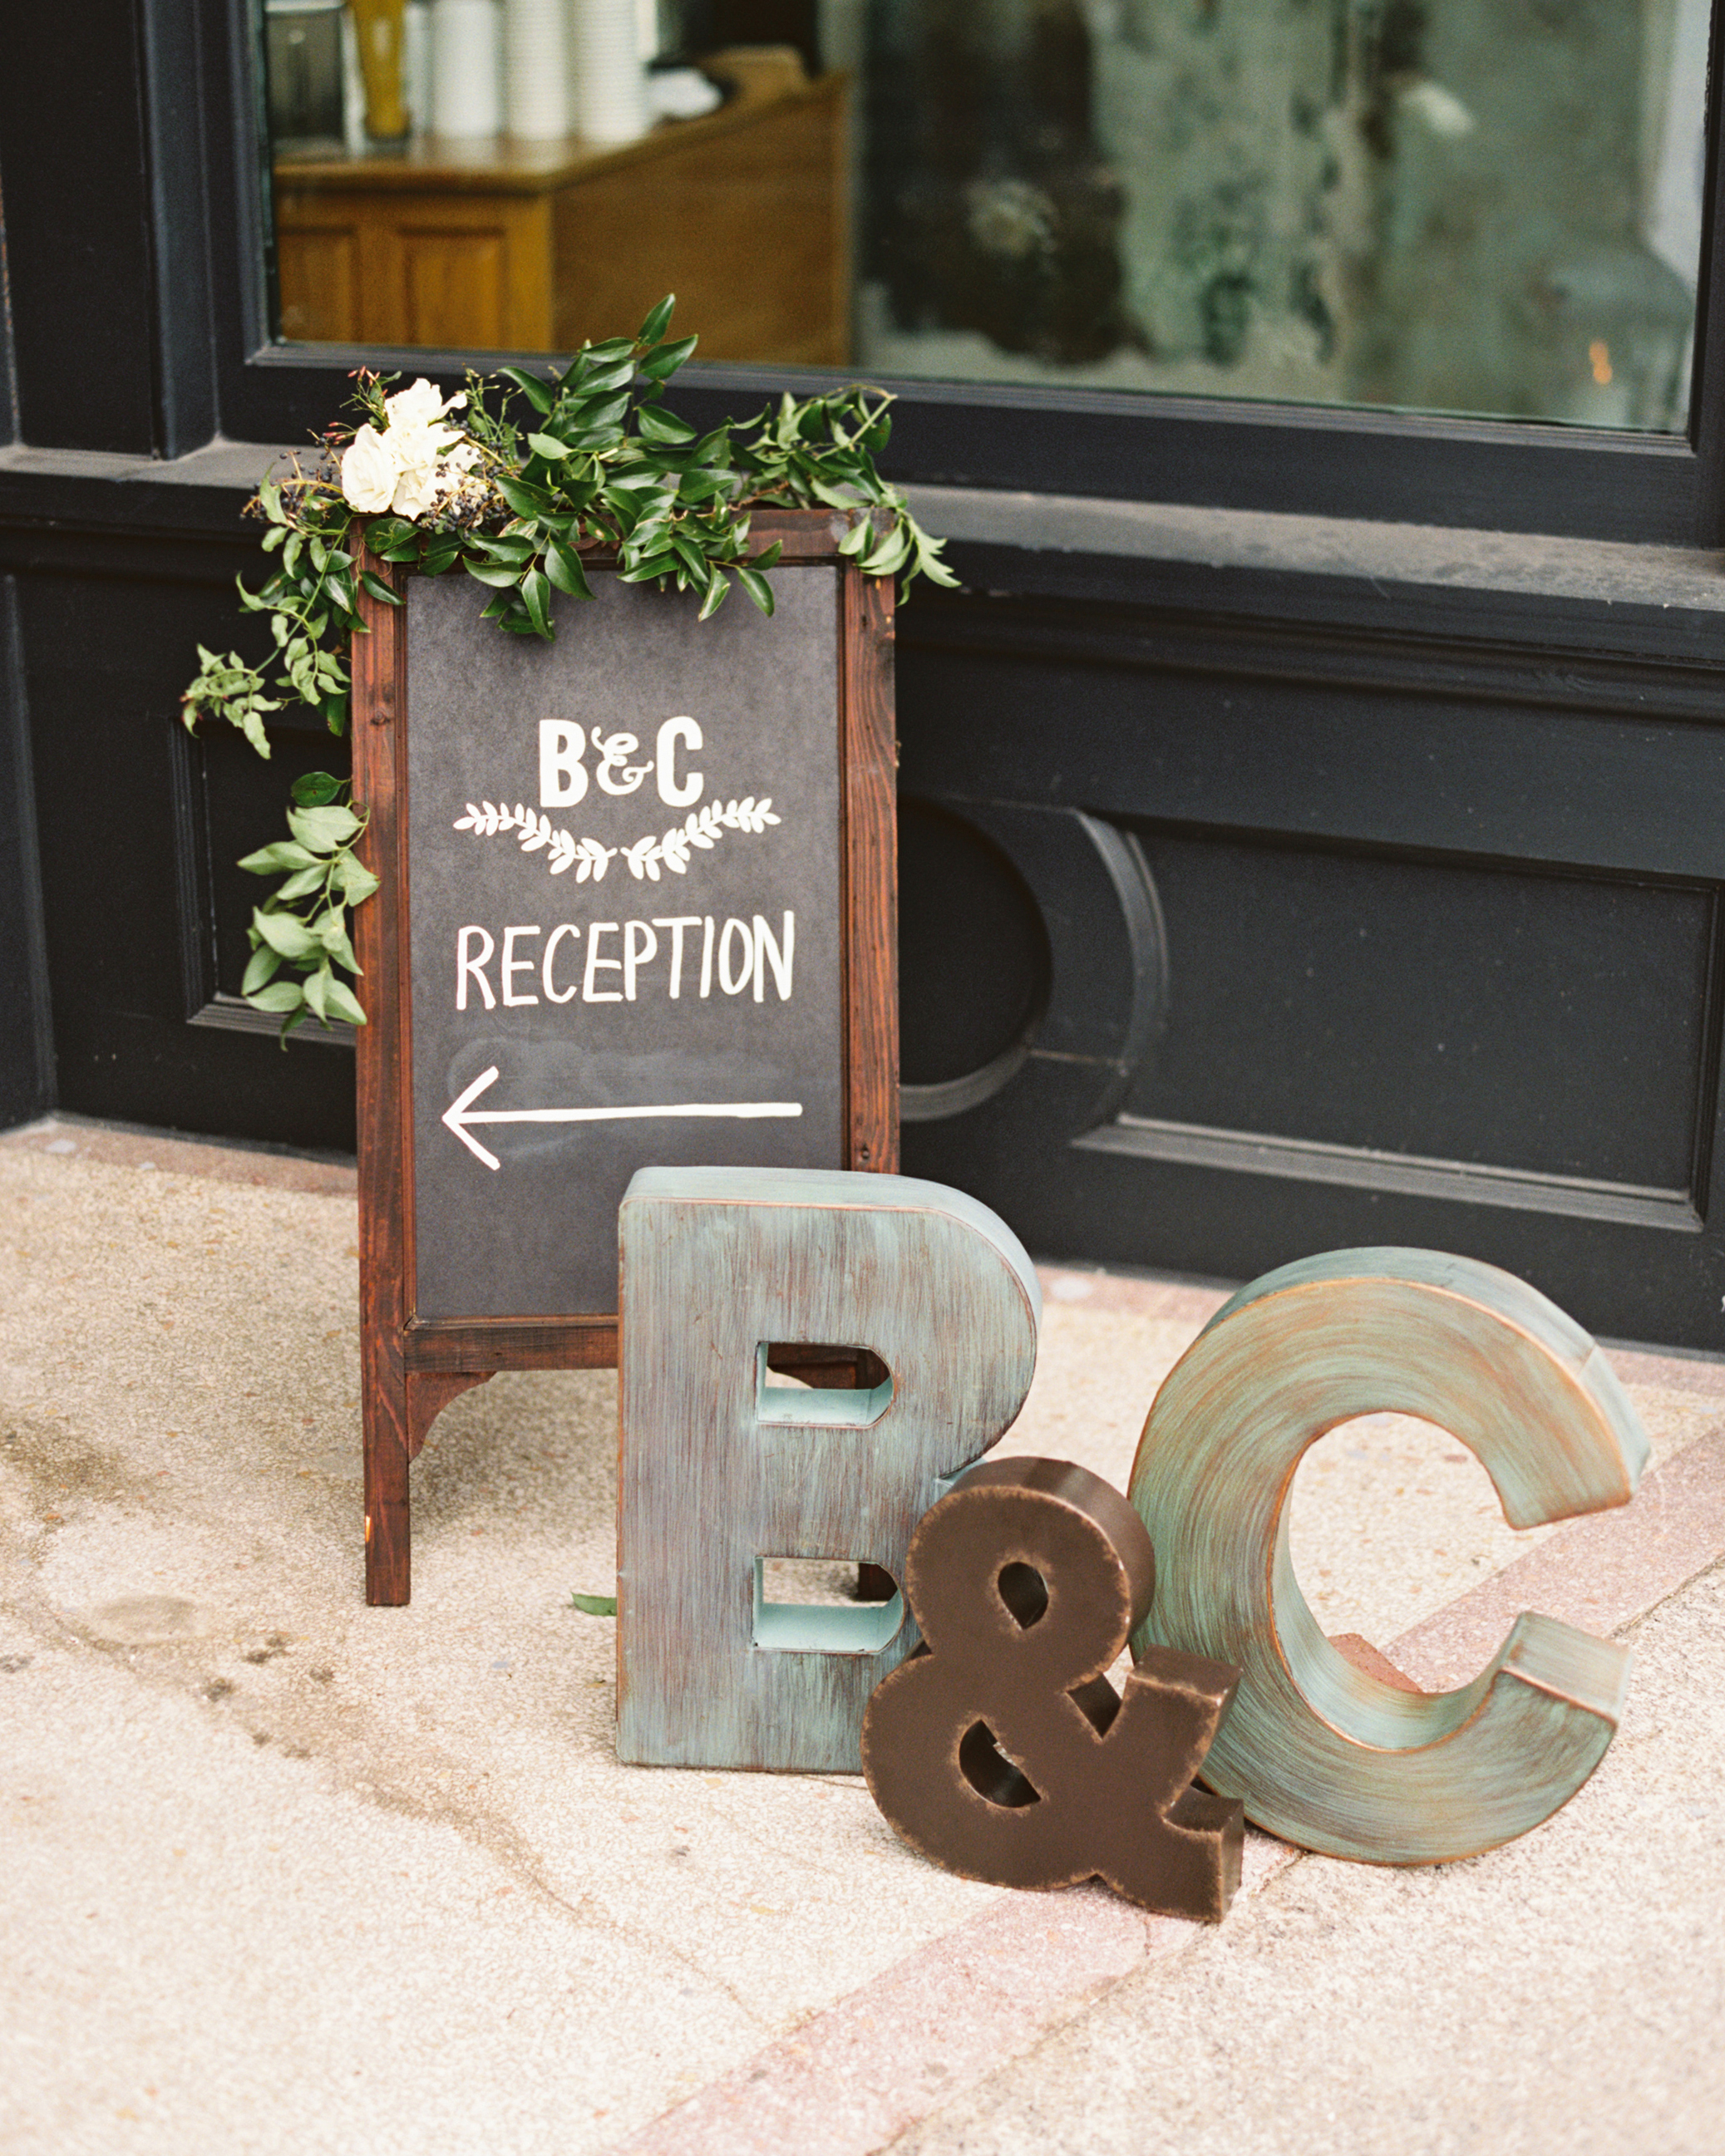 coleen-brandon-wedding-signage-0614.jpg